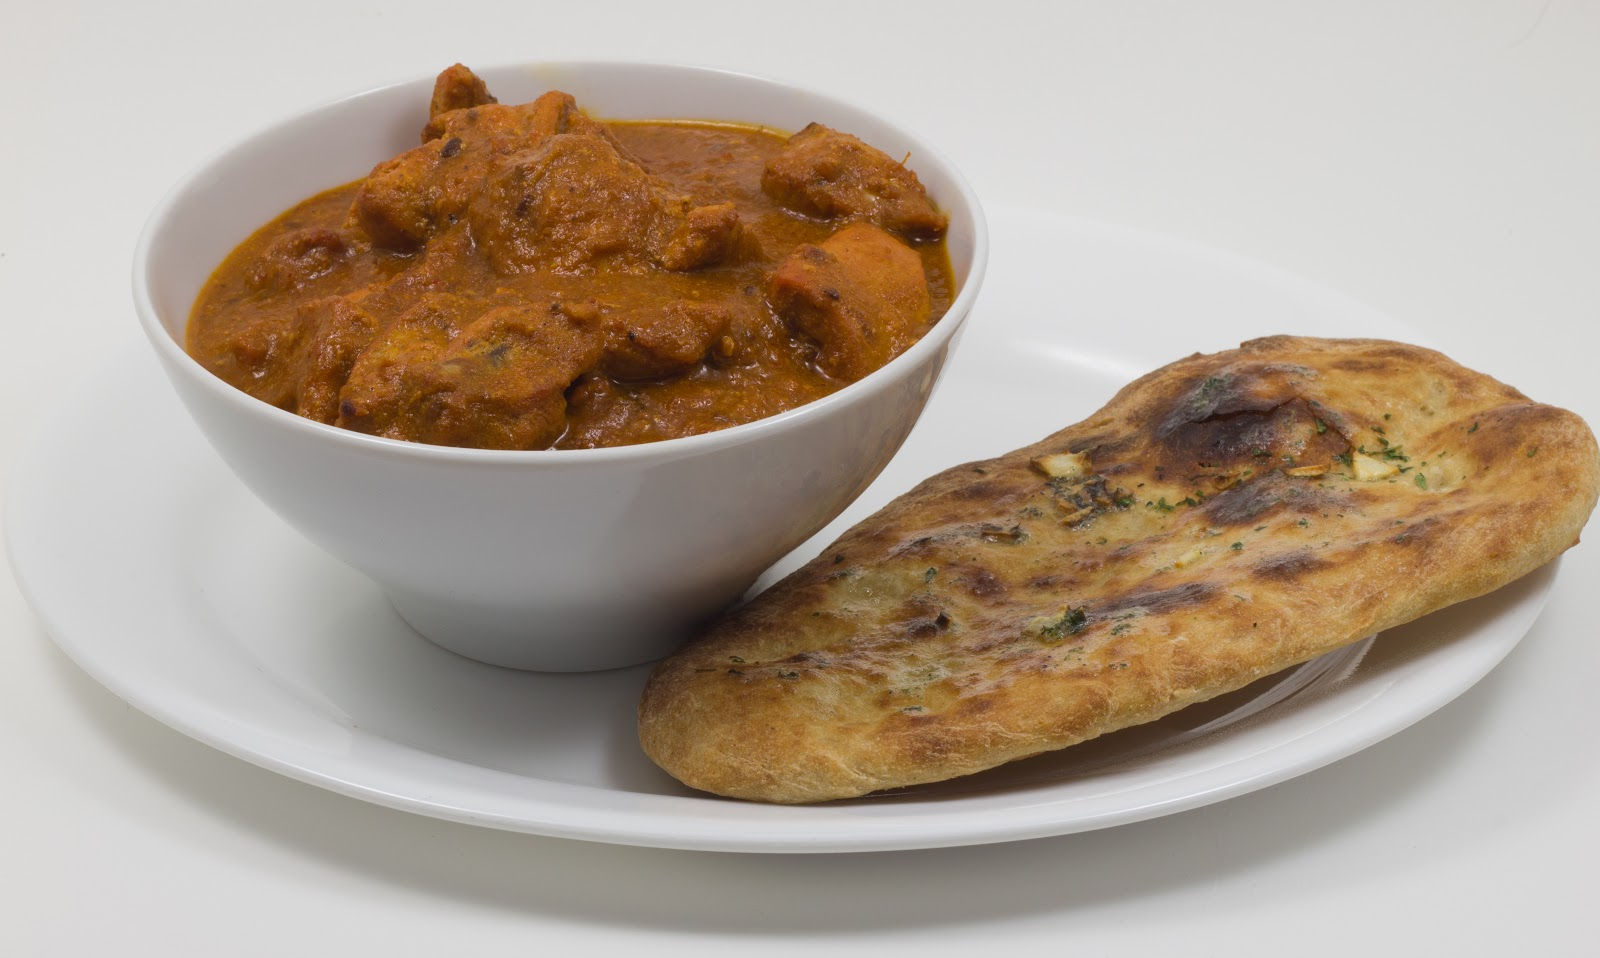 Pin of punjabi cuisine and is great to serve with roti or - Herve cuisine butter chicken ...